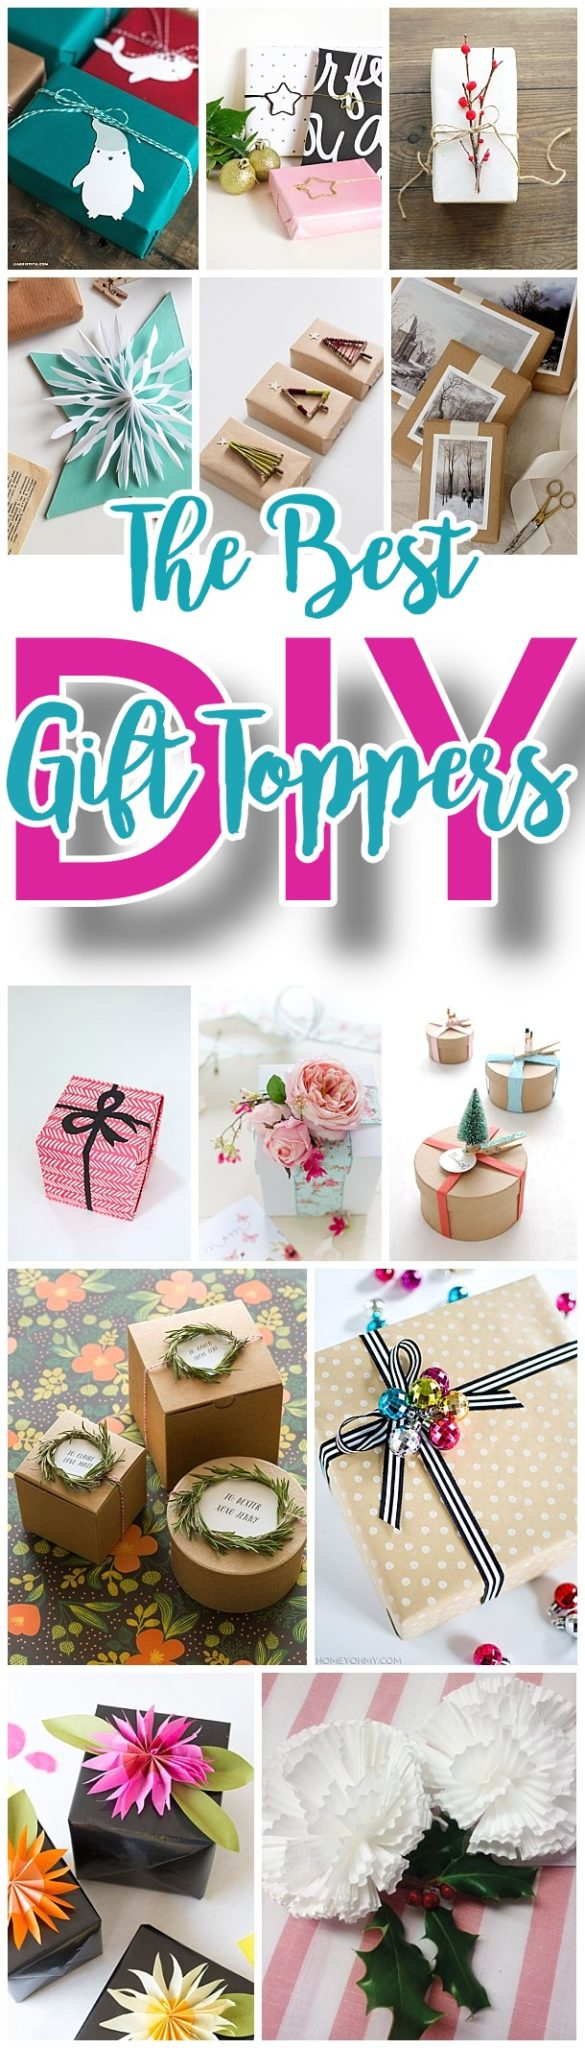 The BEST DIY Gift Toppers - pretty handmade EASY, CHEAP and fun gift wrapping ideas for Christmas Birthdays Holidays and any time you want someone to feel extra special! #diygifttoppers #DIYGiftwrapping #diygiftwrap #gifttoppers #christmasgifttoppers #diychristmasgifttoppers #birthdaygifttoppers #diychristmasbows